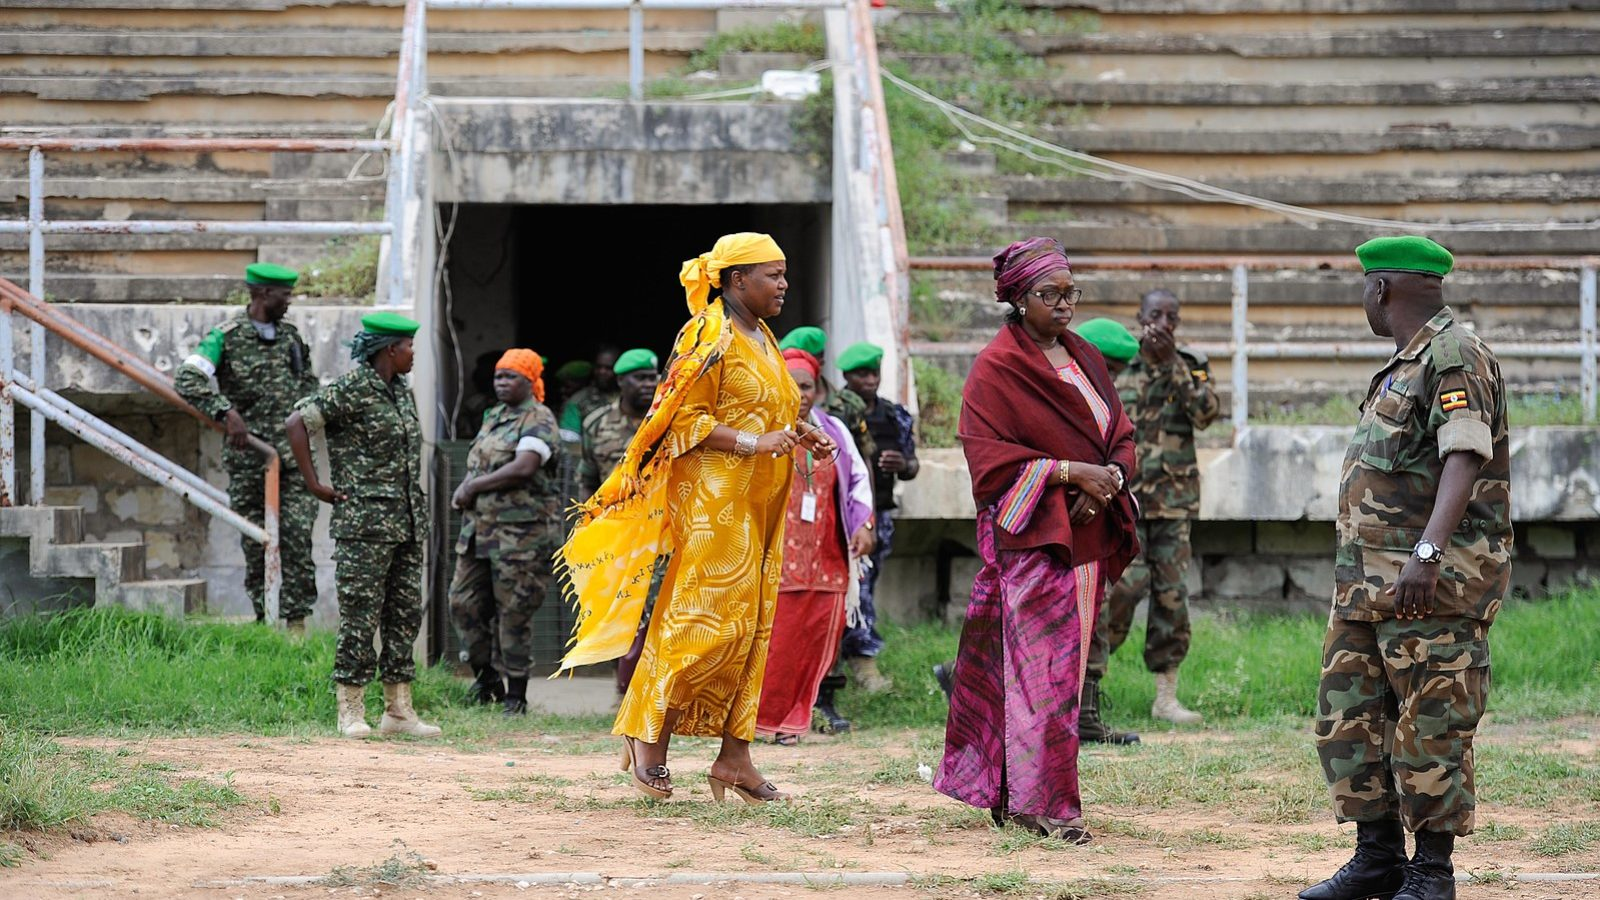 Three women in brightly colored clothing walk among soldiers in camouflage.